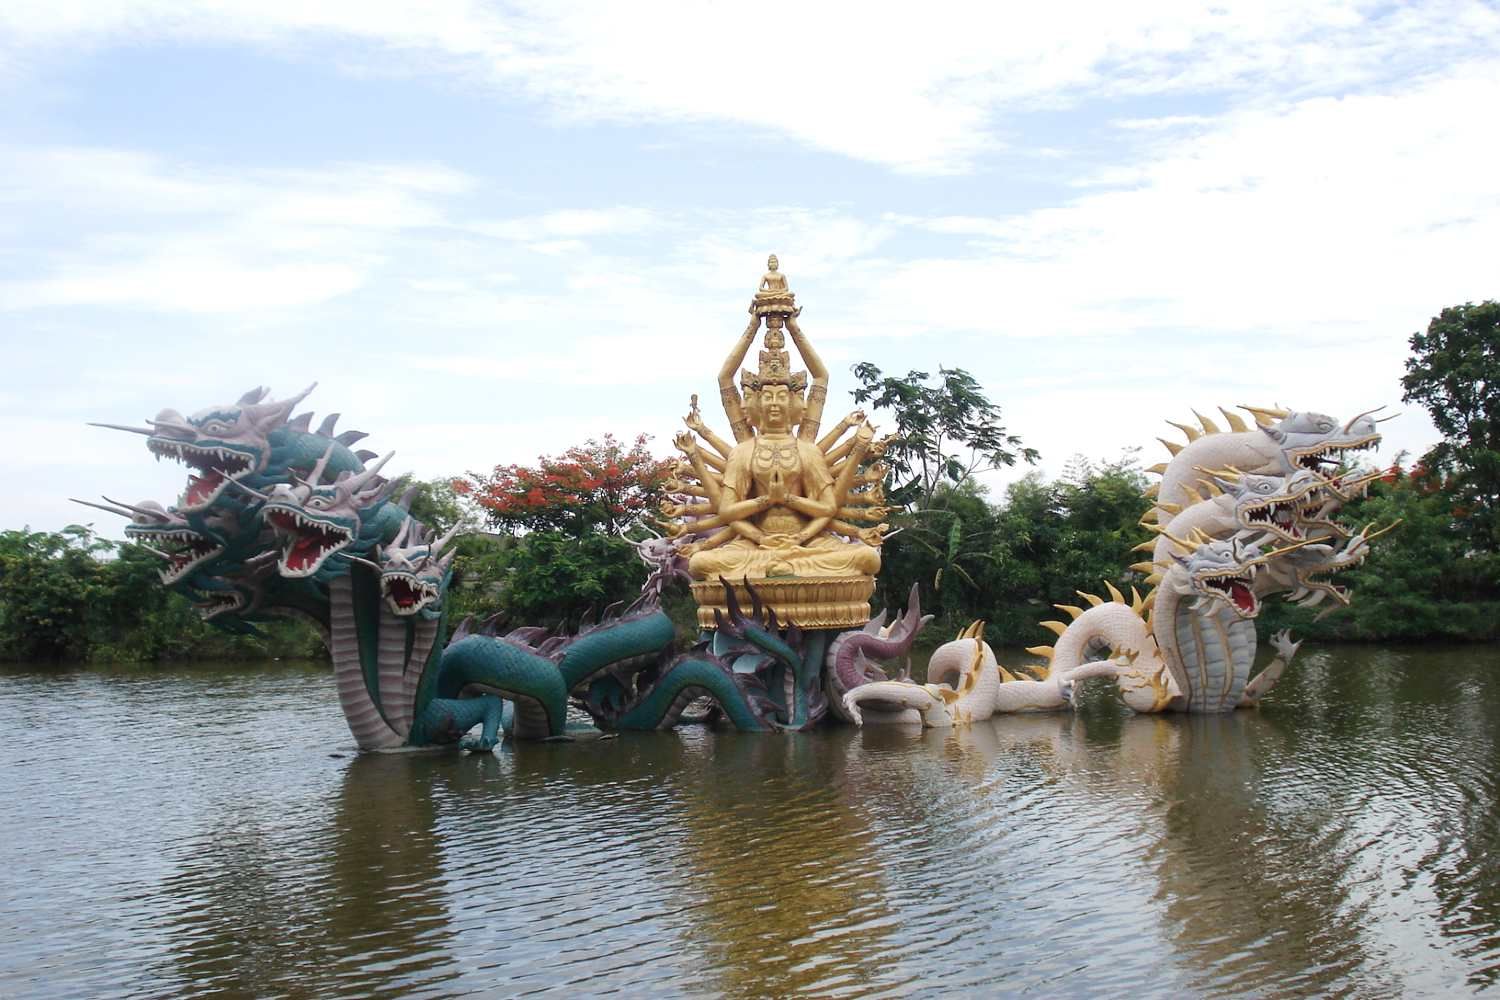 Fountain with dragon heads and Buddha statue in the waters of Ancient City. Muang Boran, Thailand